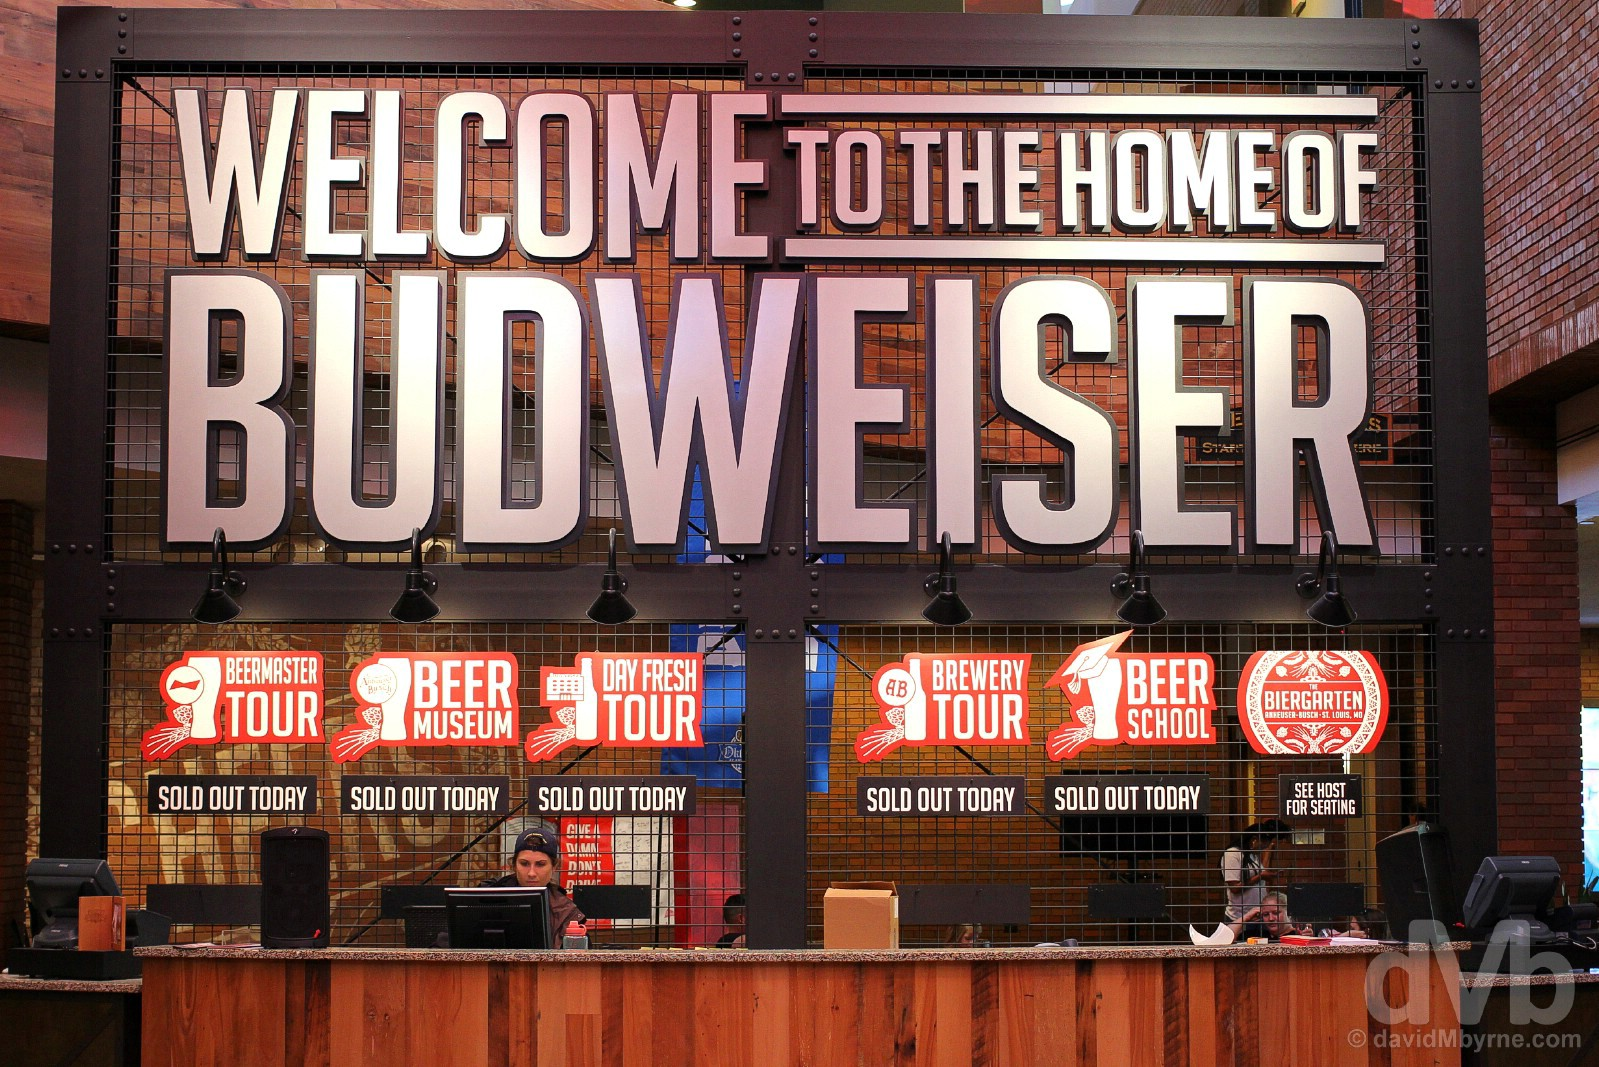 The Home of Bud. Anheuser-Busch, St. Louis, Missouri, USA. September 17, 2016.